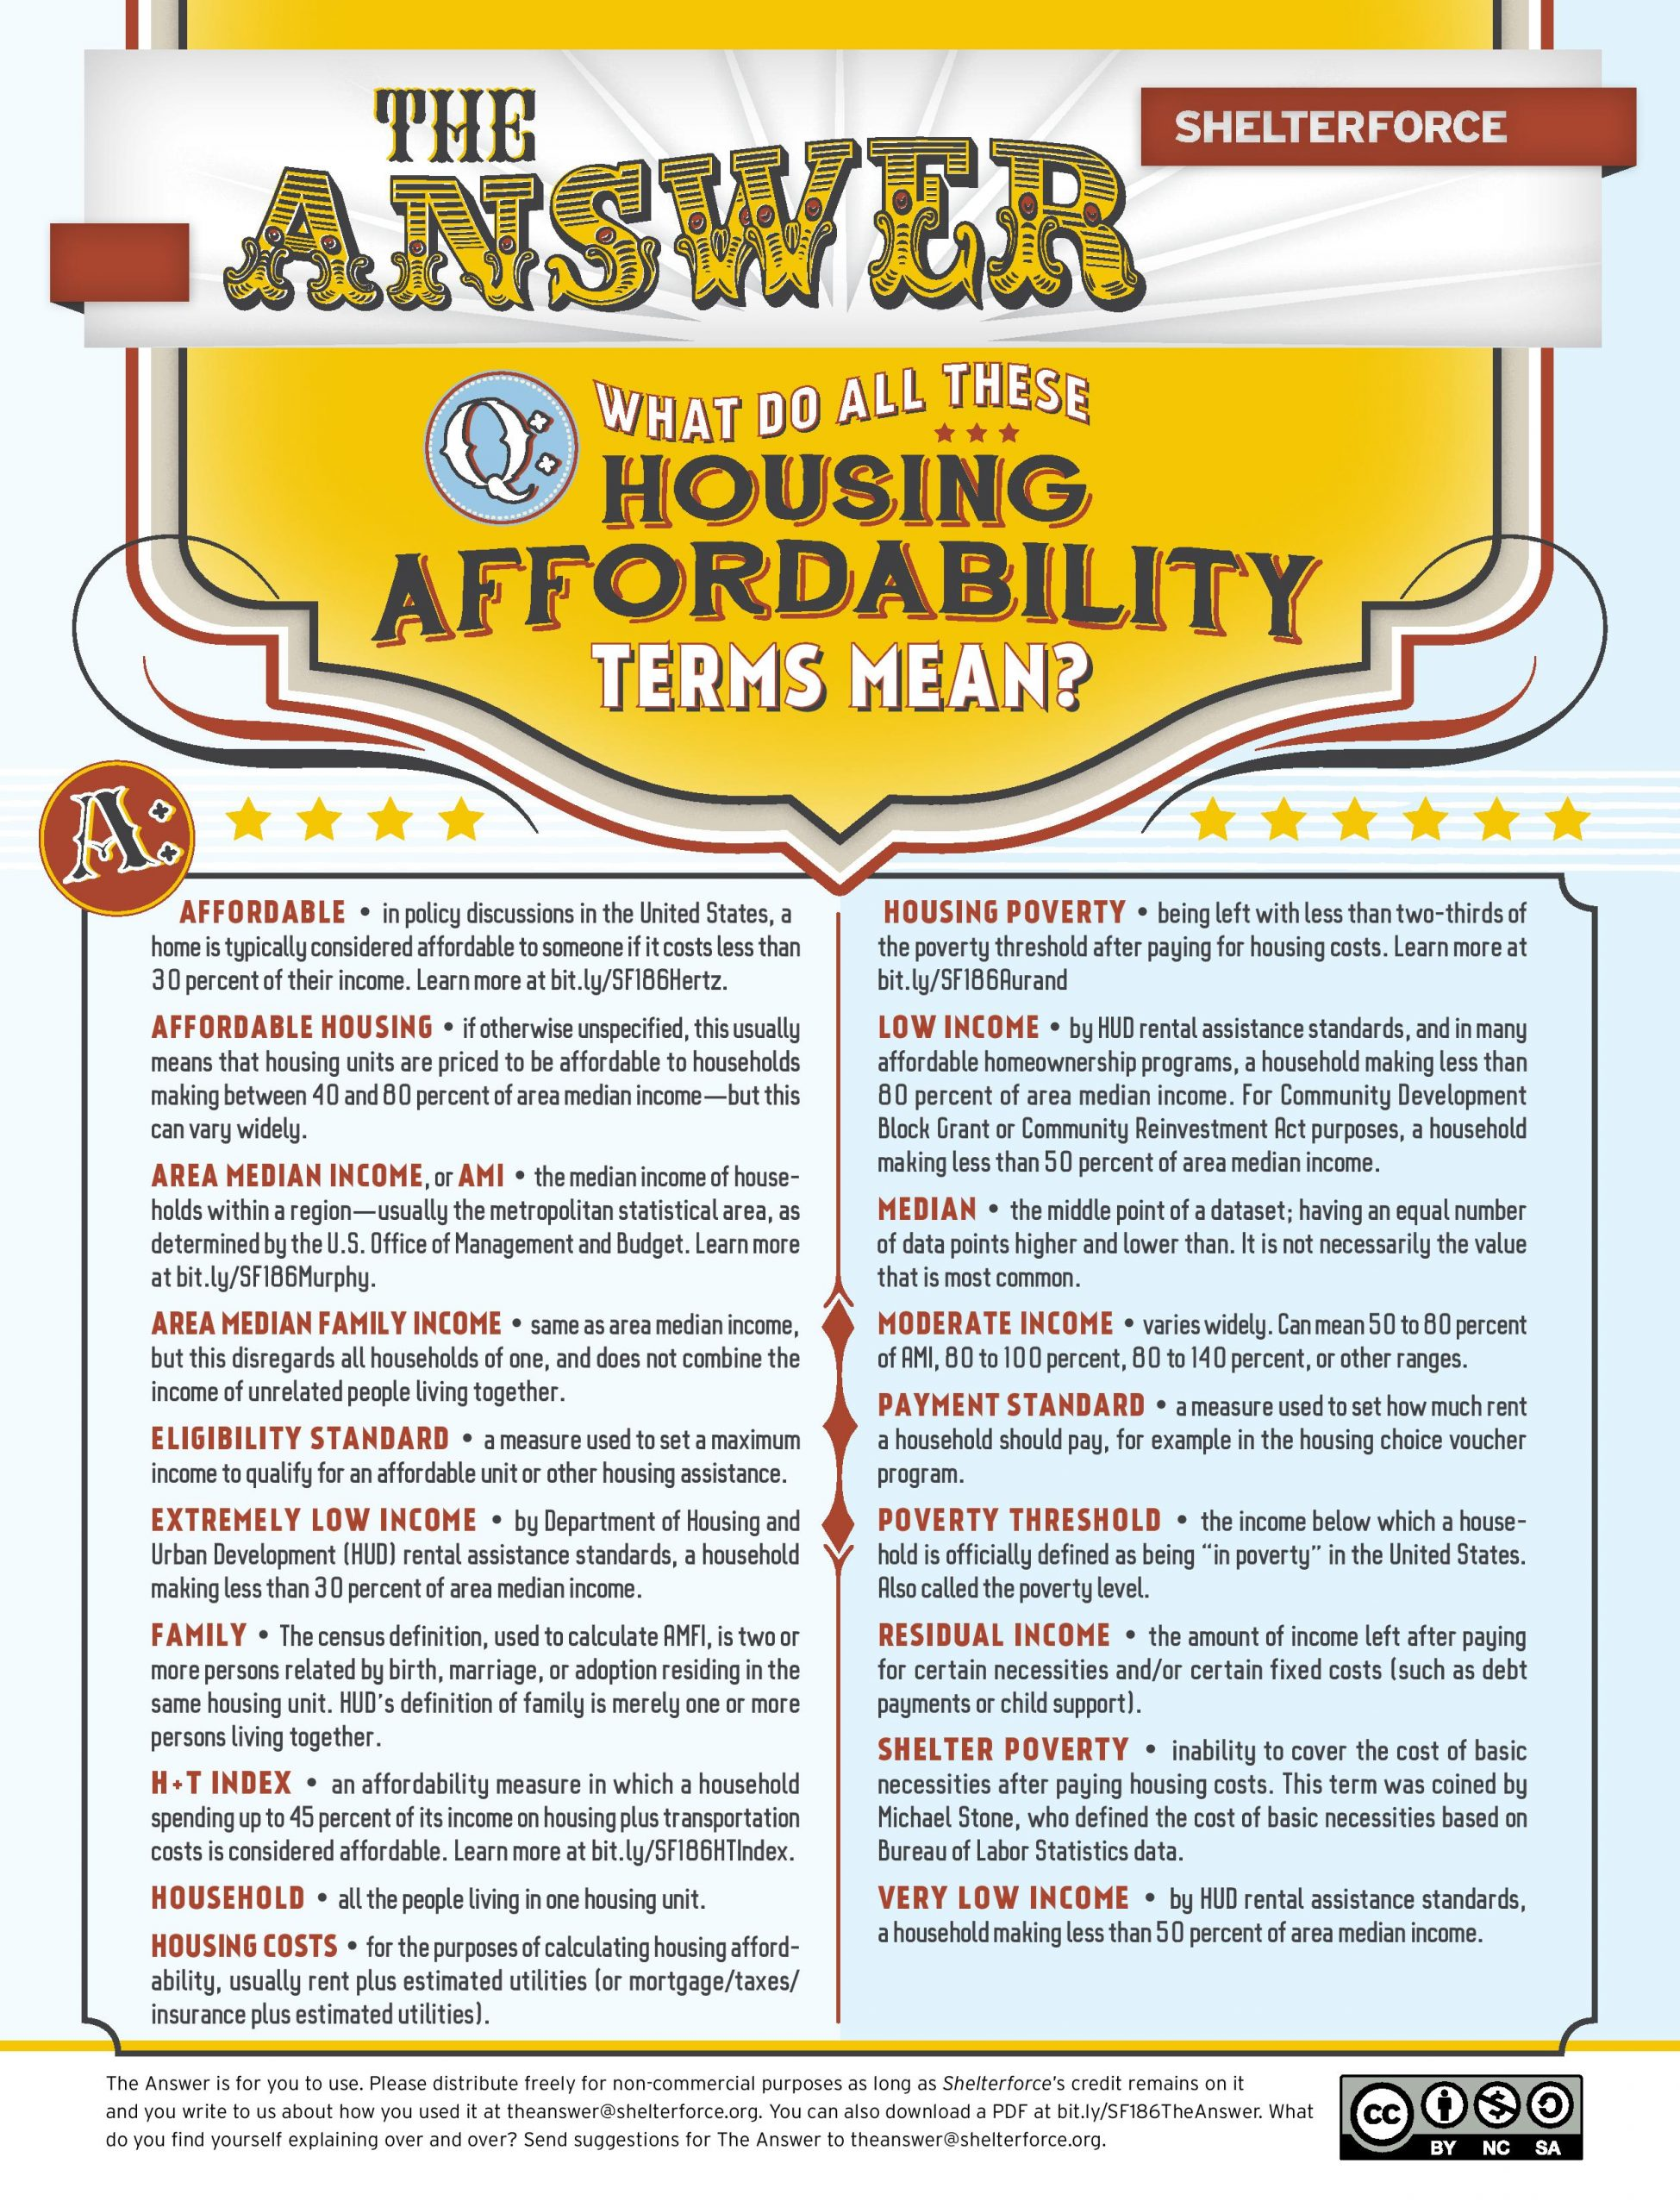 What Do All These Housing Affordability Terms Mean?